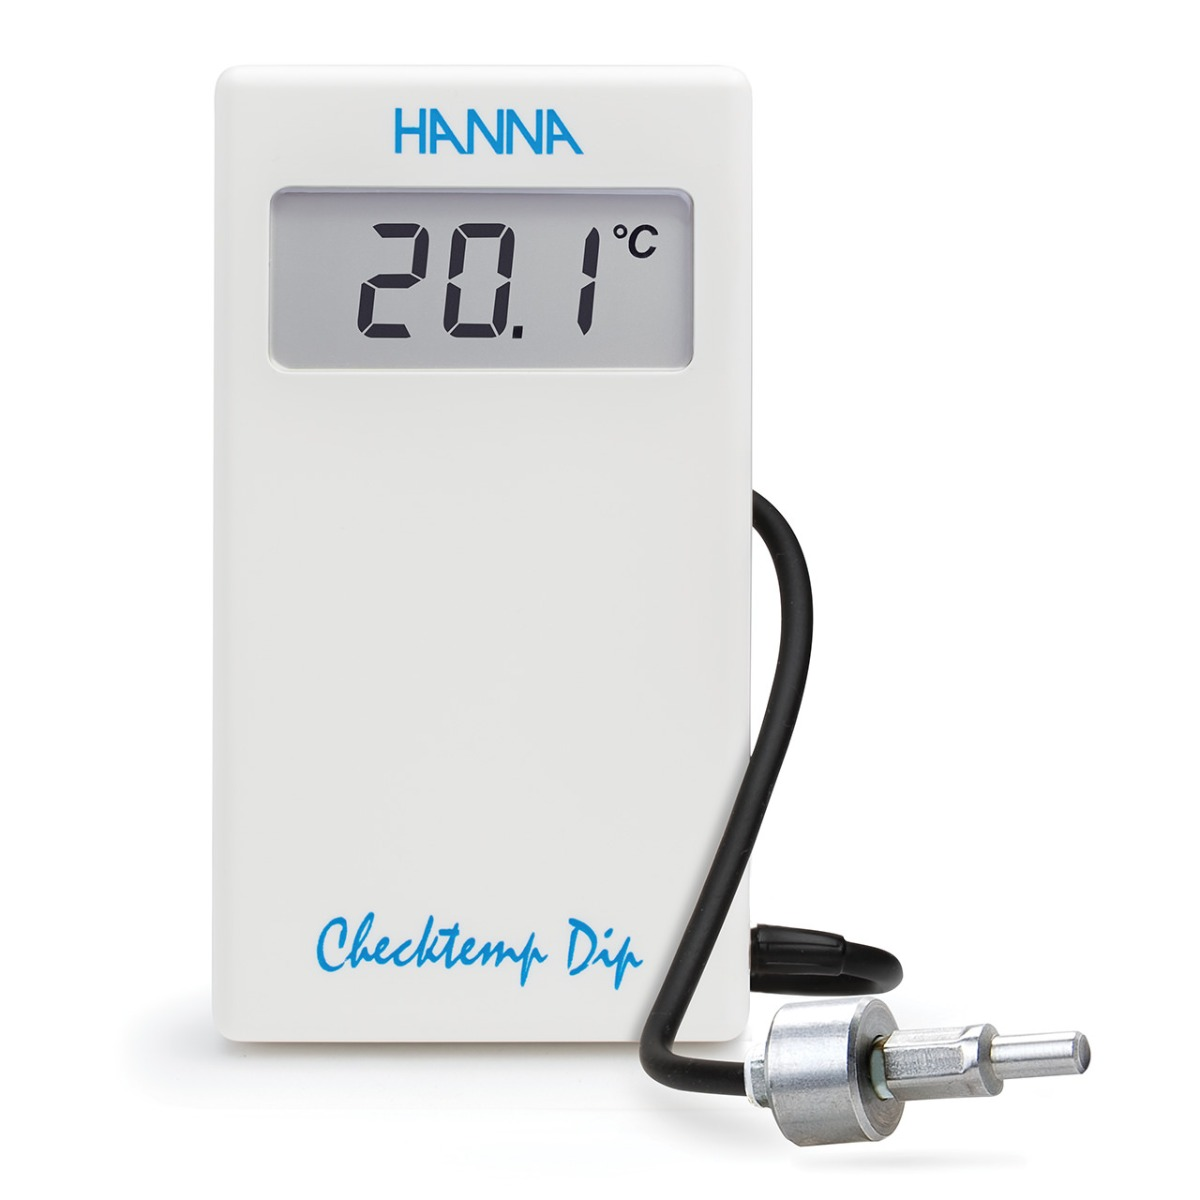 Checktemp Dip Digital Thermometer - HI98539